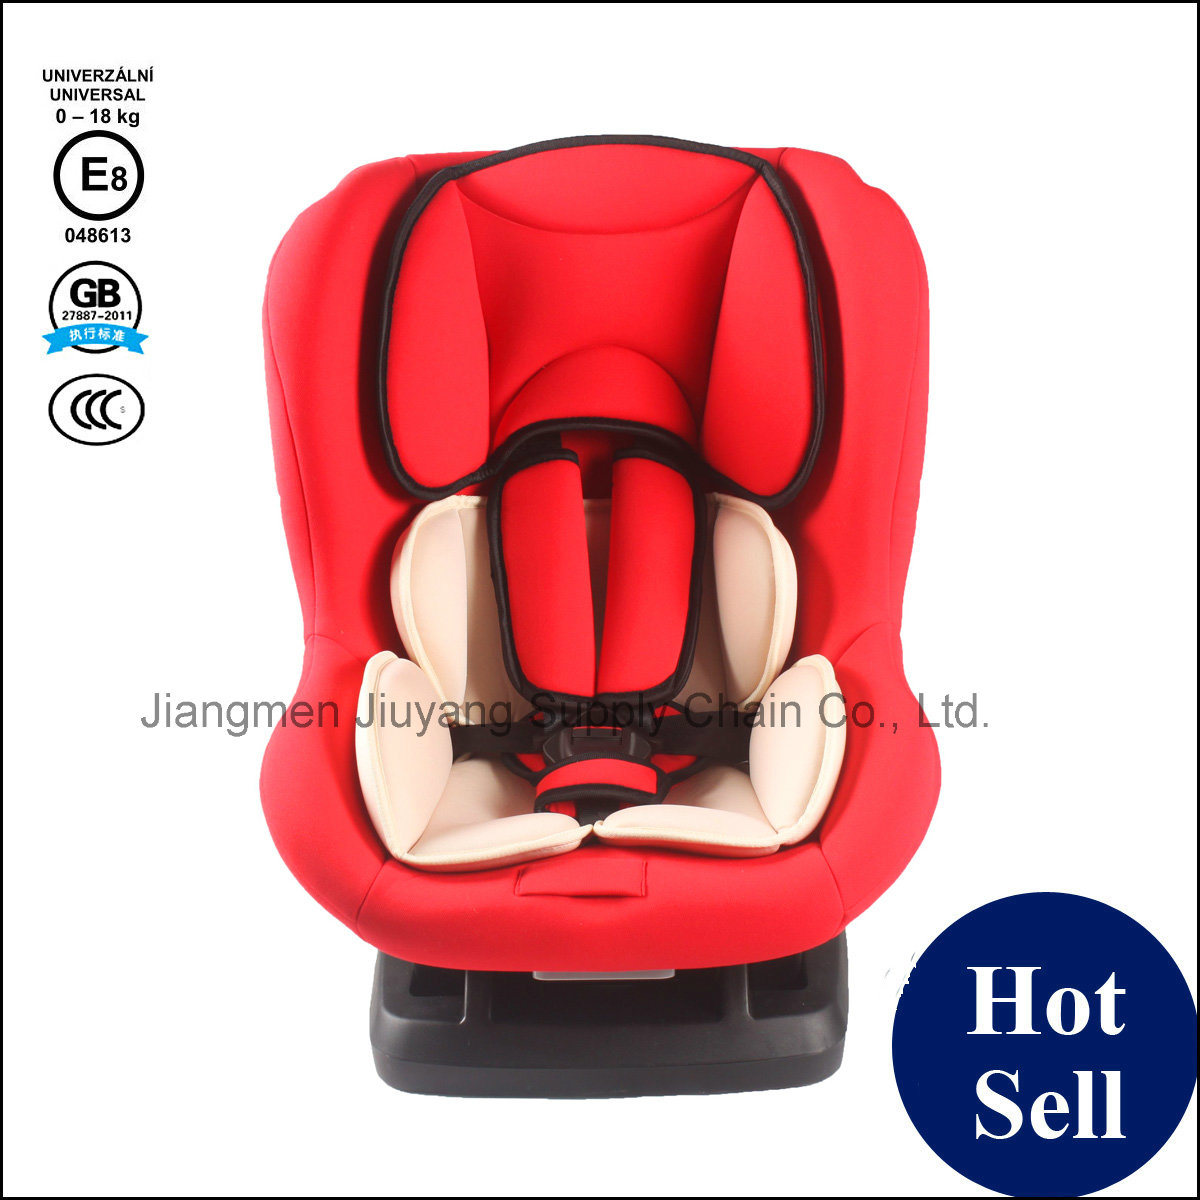 Baby Items - HDPE Frame Baby Safety Car Seat with ECE8 / 3c / GB Certification